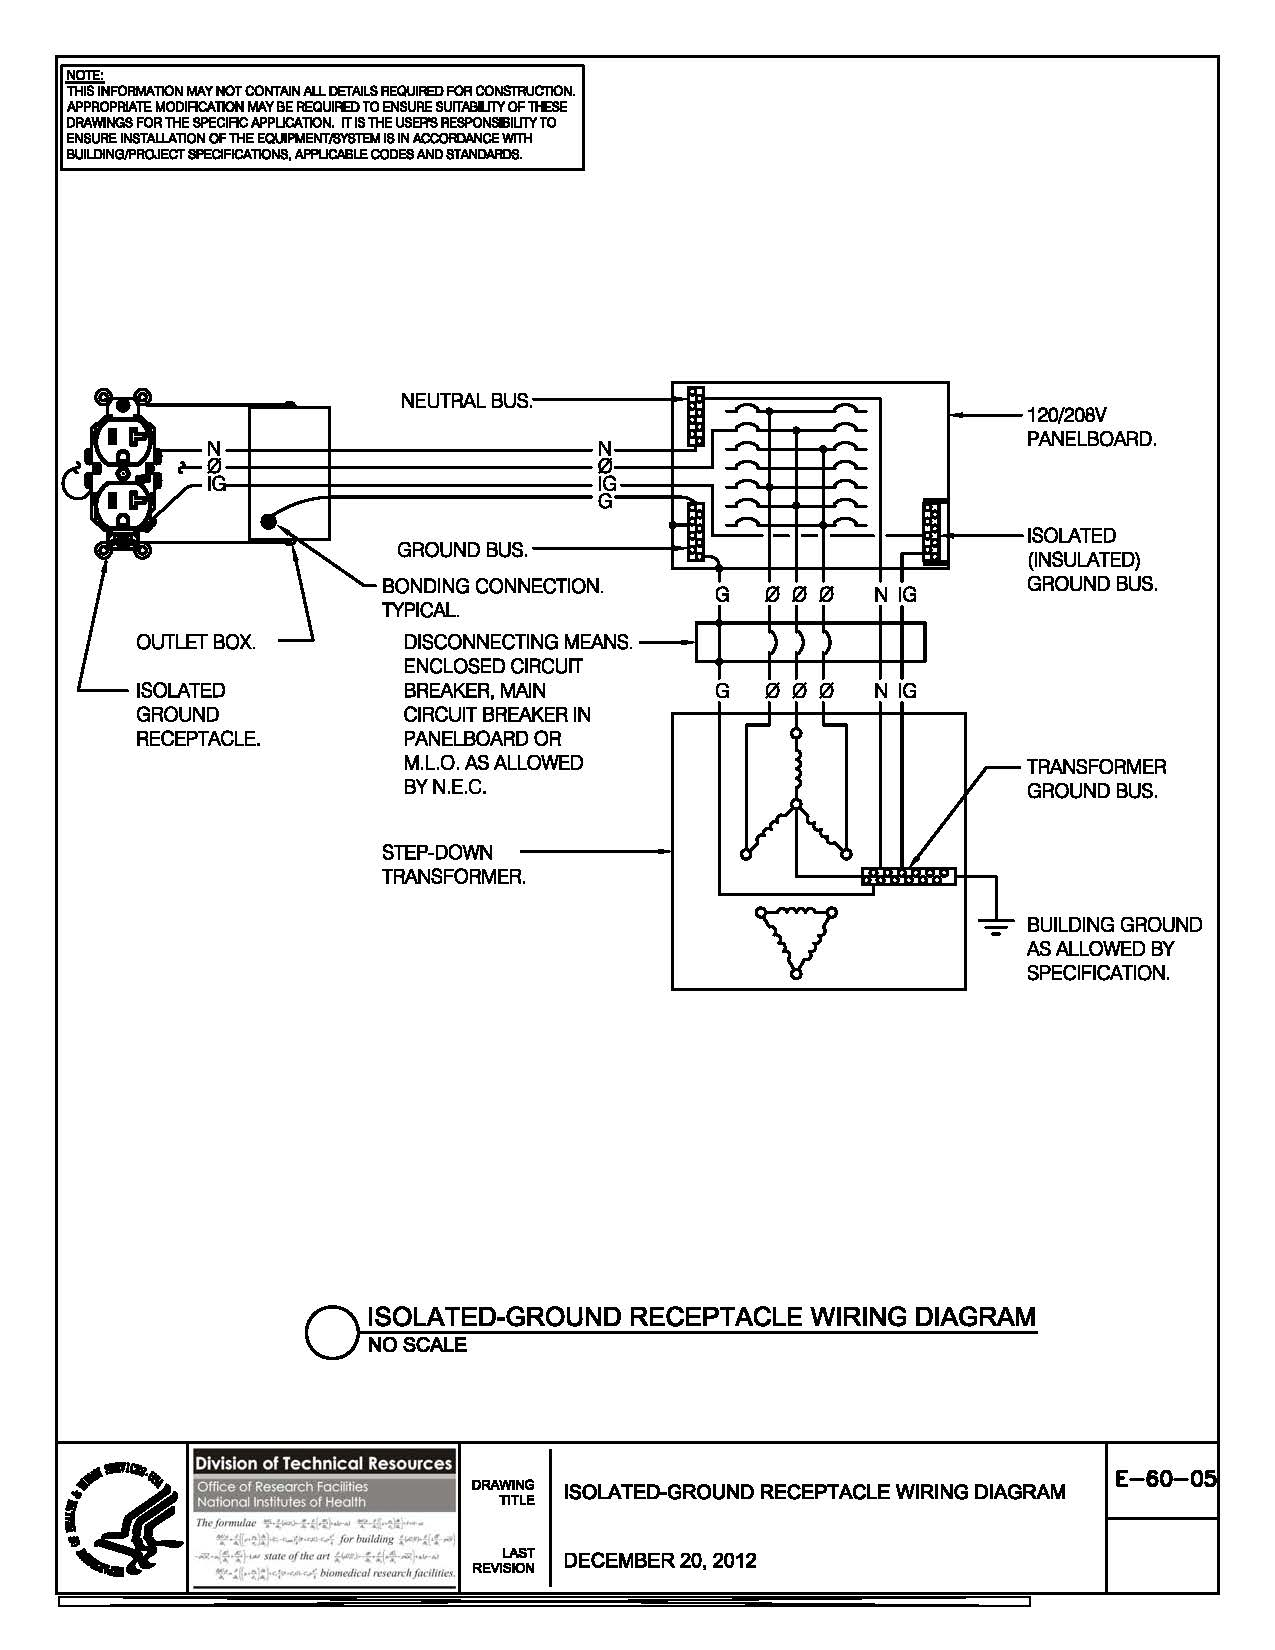 whelen 295hfsa6 wiring diagram Download-pad mount transformer wiring diagram Collection of E 60 05 Isolated Ground Receptacle Wiring Diagram DOWNLOAD Wiring Diagram 19-n